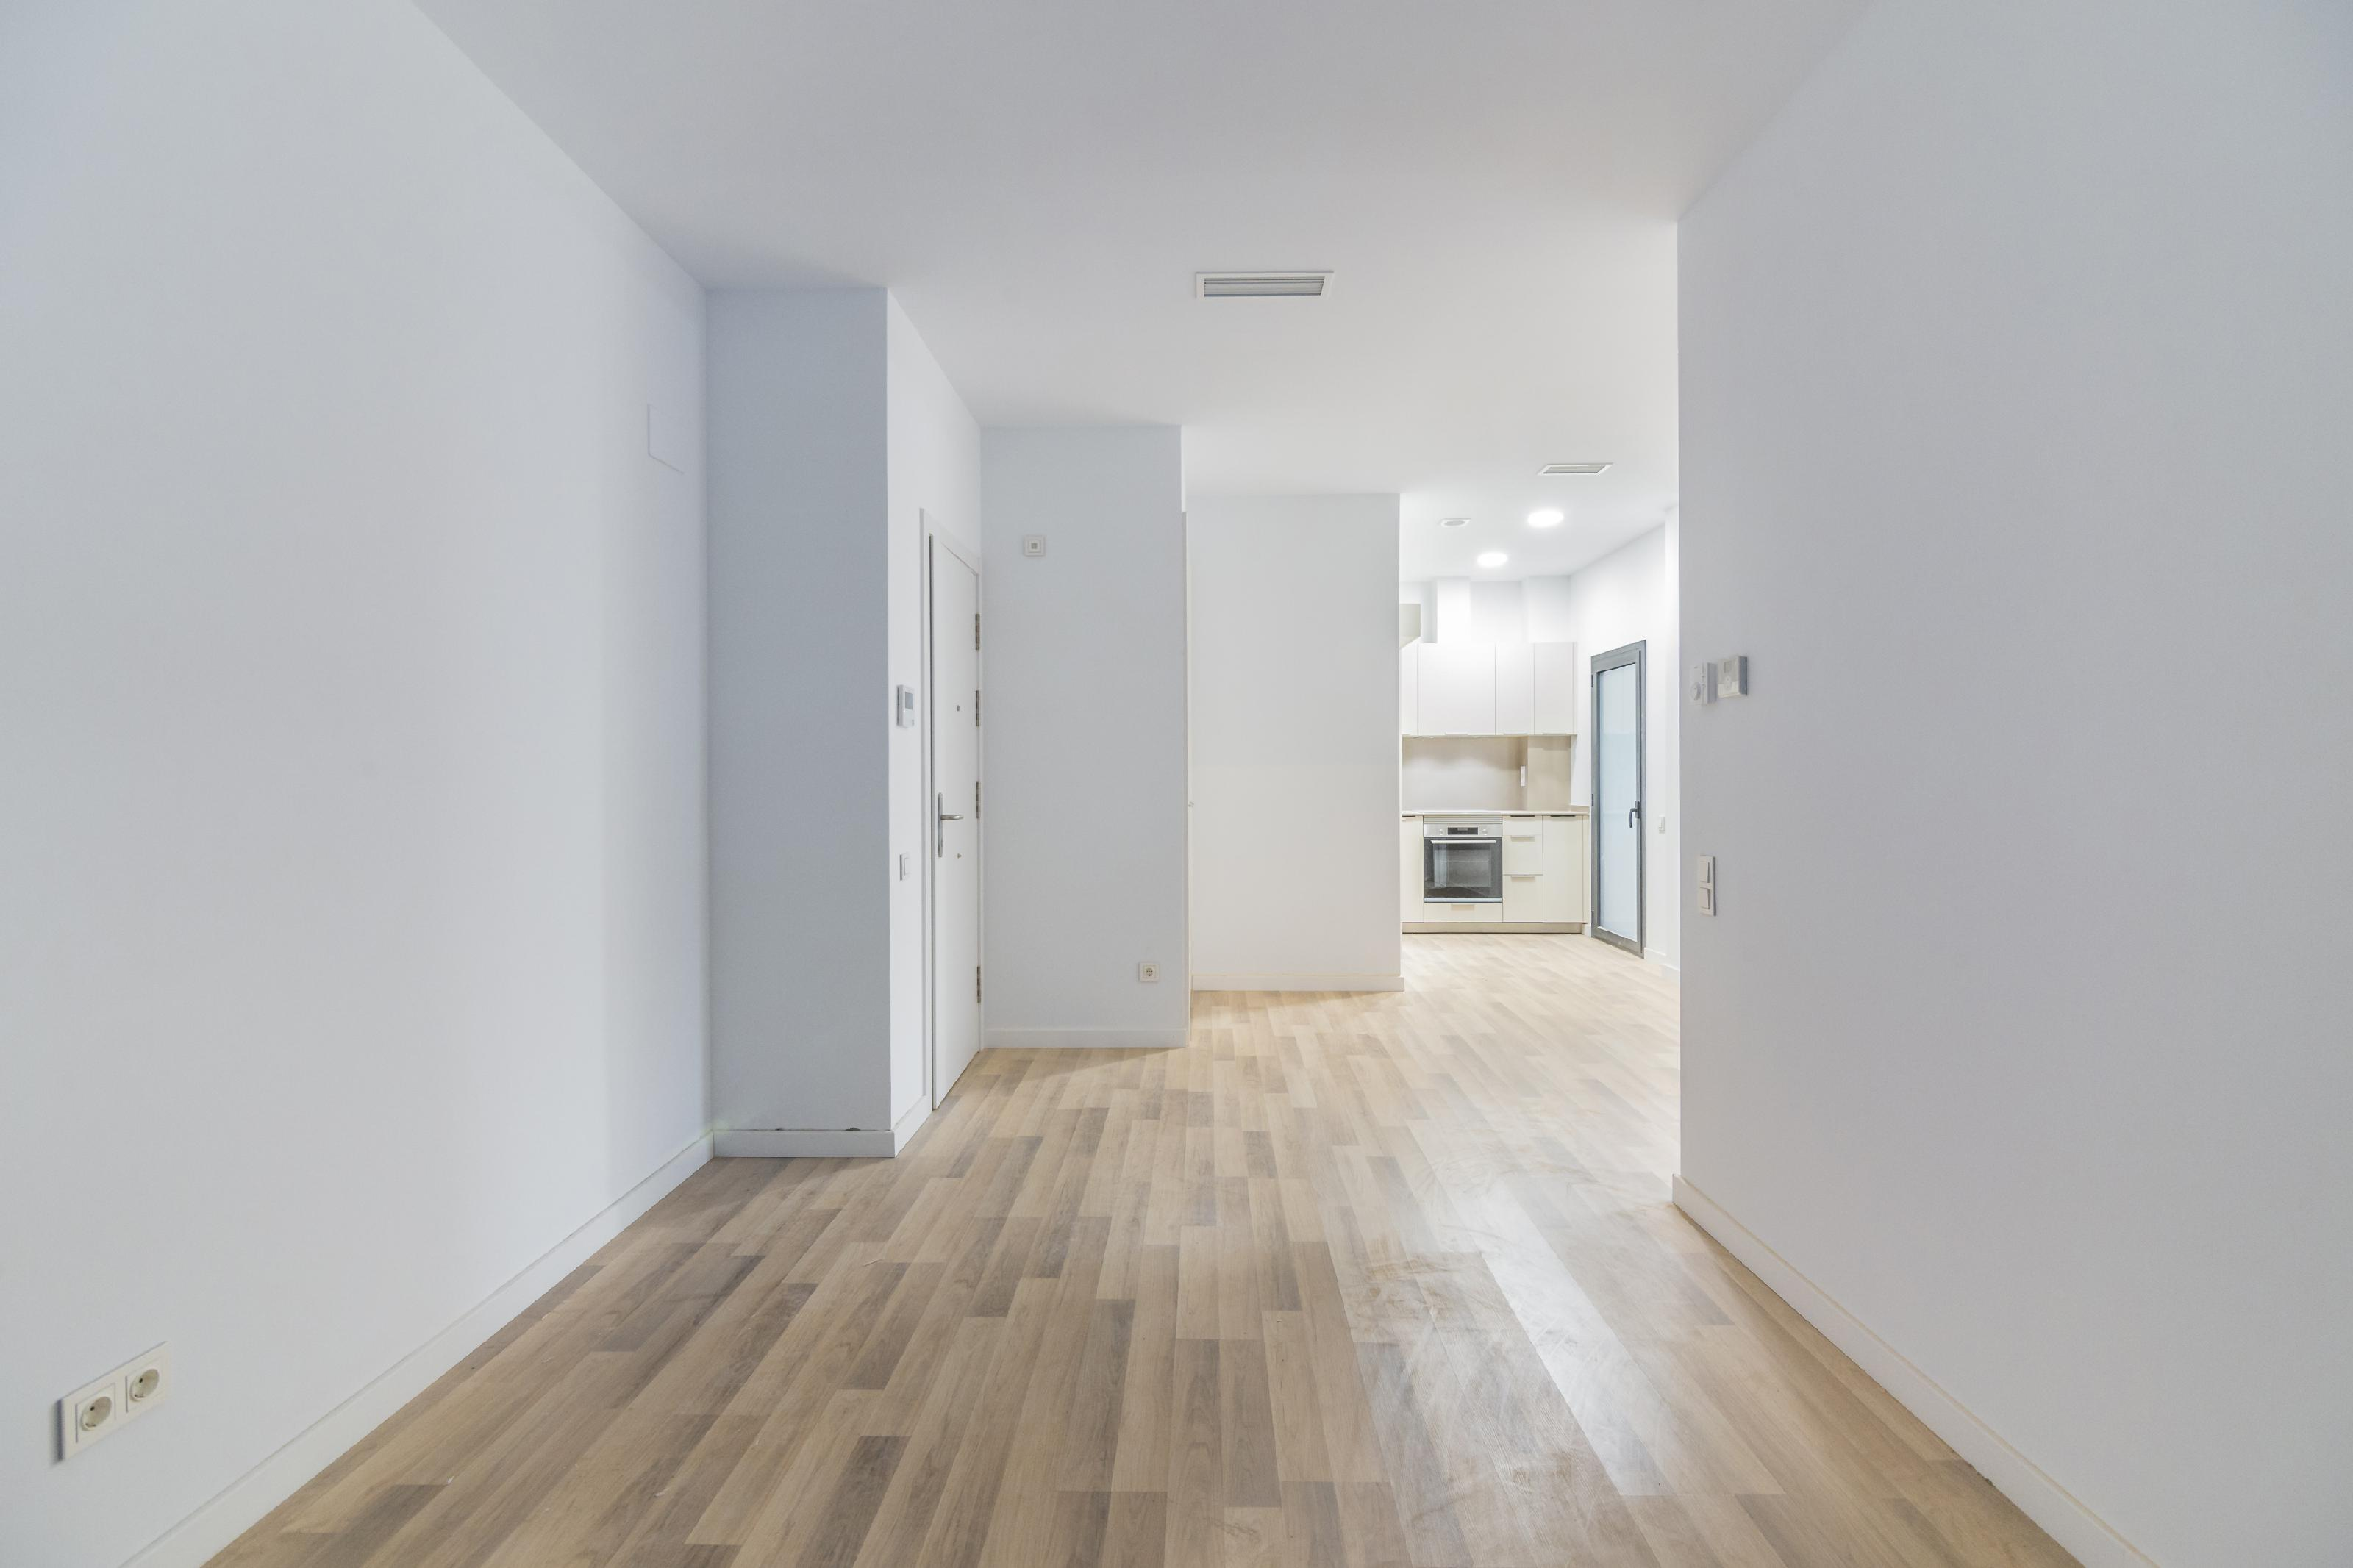 220649 Apartment for sale in Sarrià-Sant Gervasi, Sant Gervasi-Galvany 1